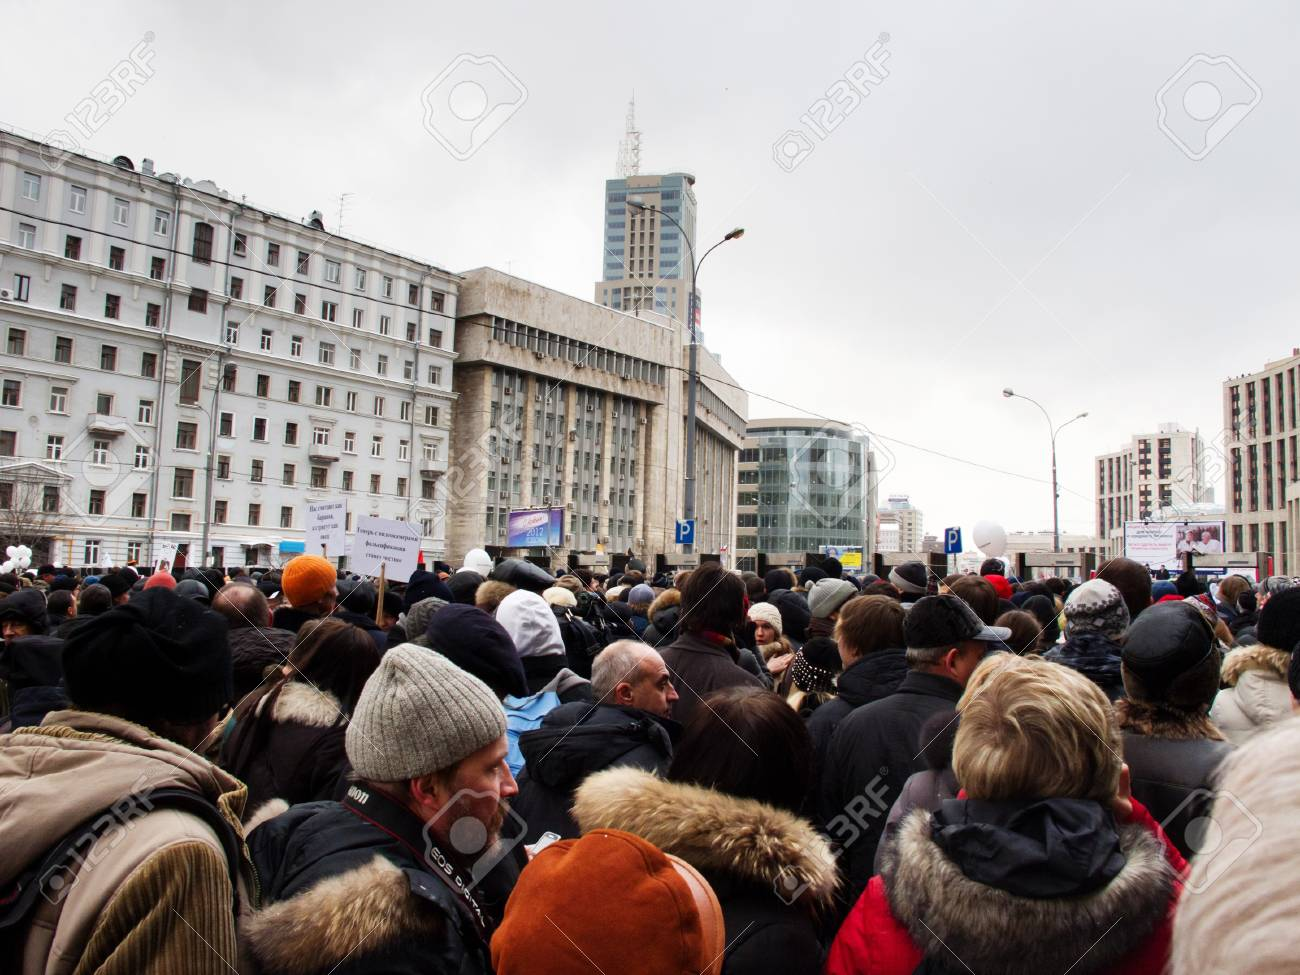 MOSCOW, RUSSIA - DECEMBER, 24, 2011: Participants of the protest manifestation on the Saharov square in Moscow. People remonstrate against falsification of the parliamentary election results. DECEMBER, 24, 2011 IN MOSCOW, RUSSIA Stock Photo - 11653894